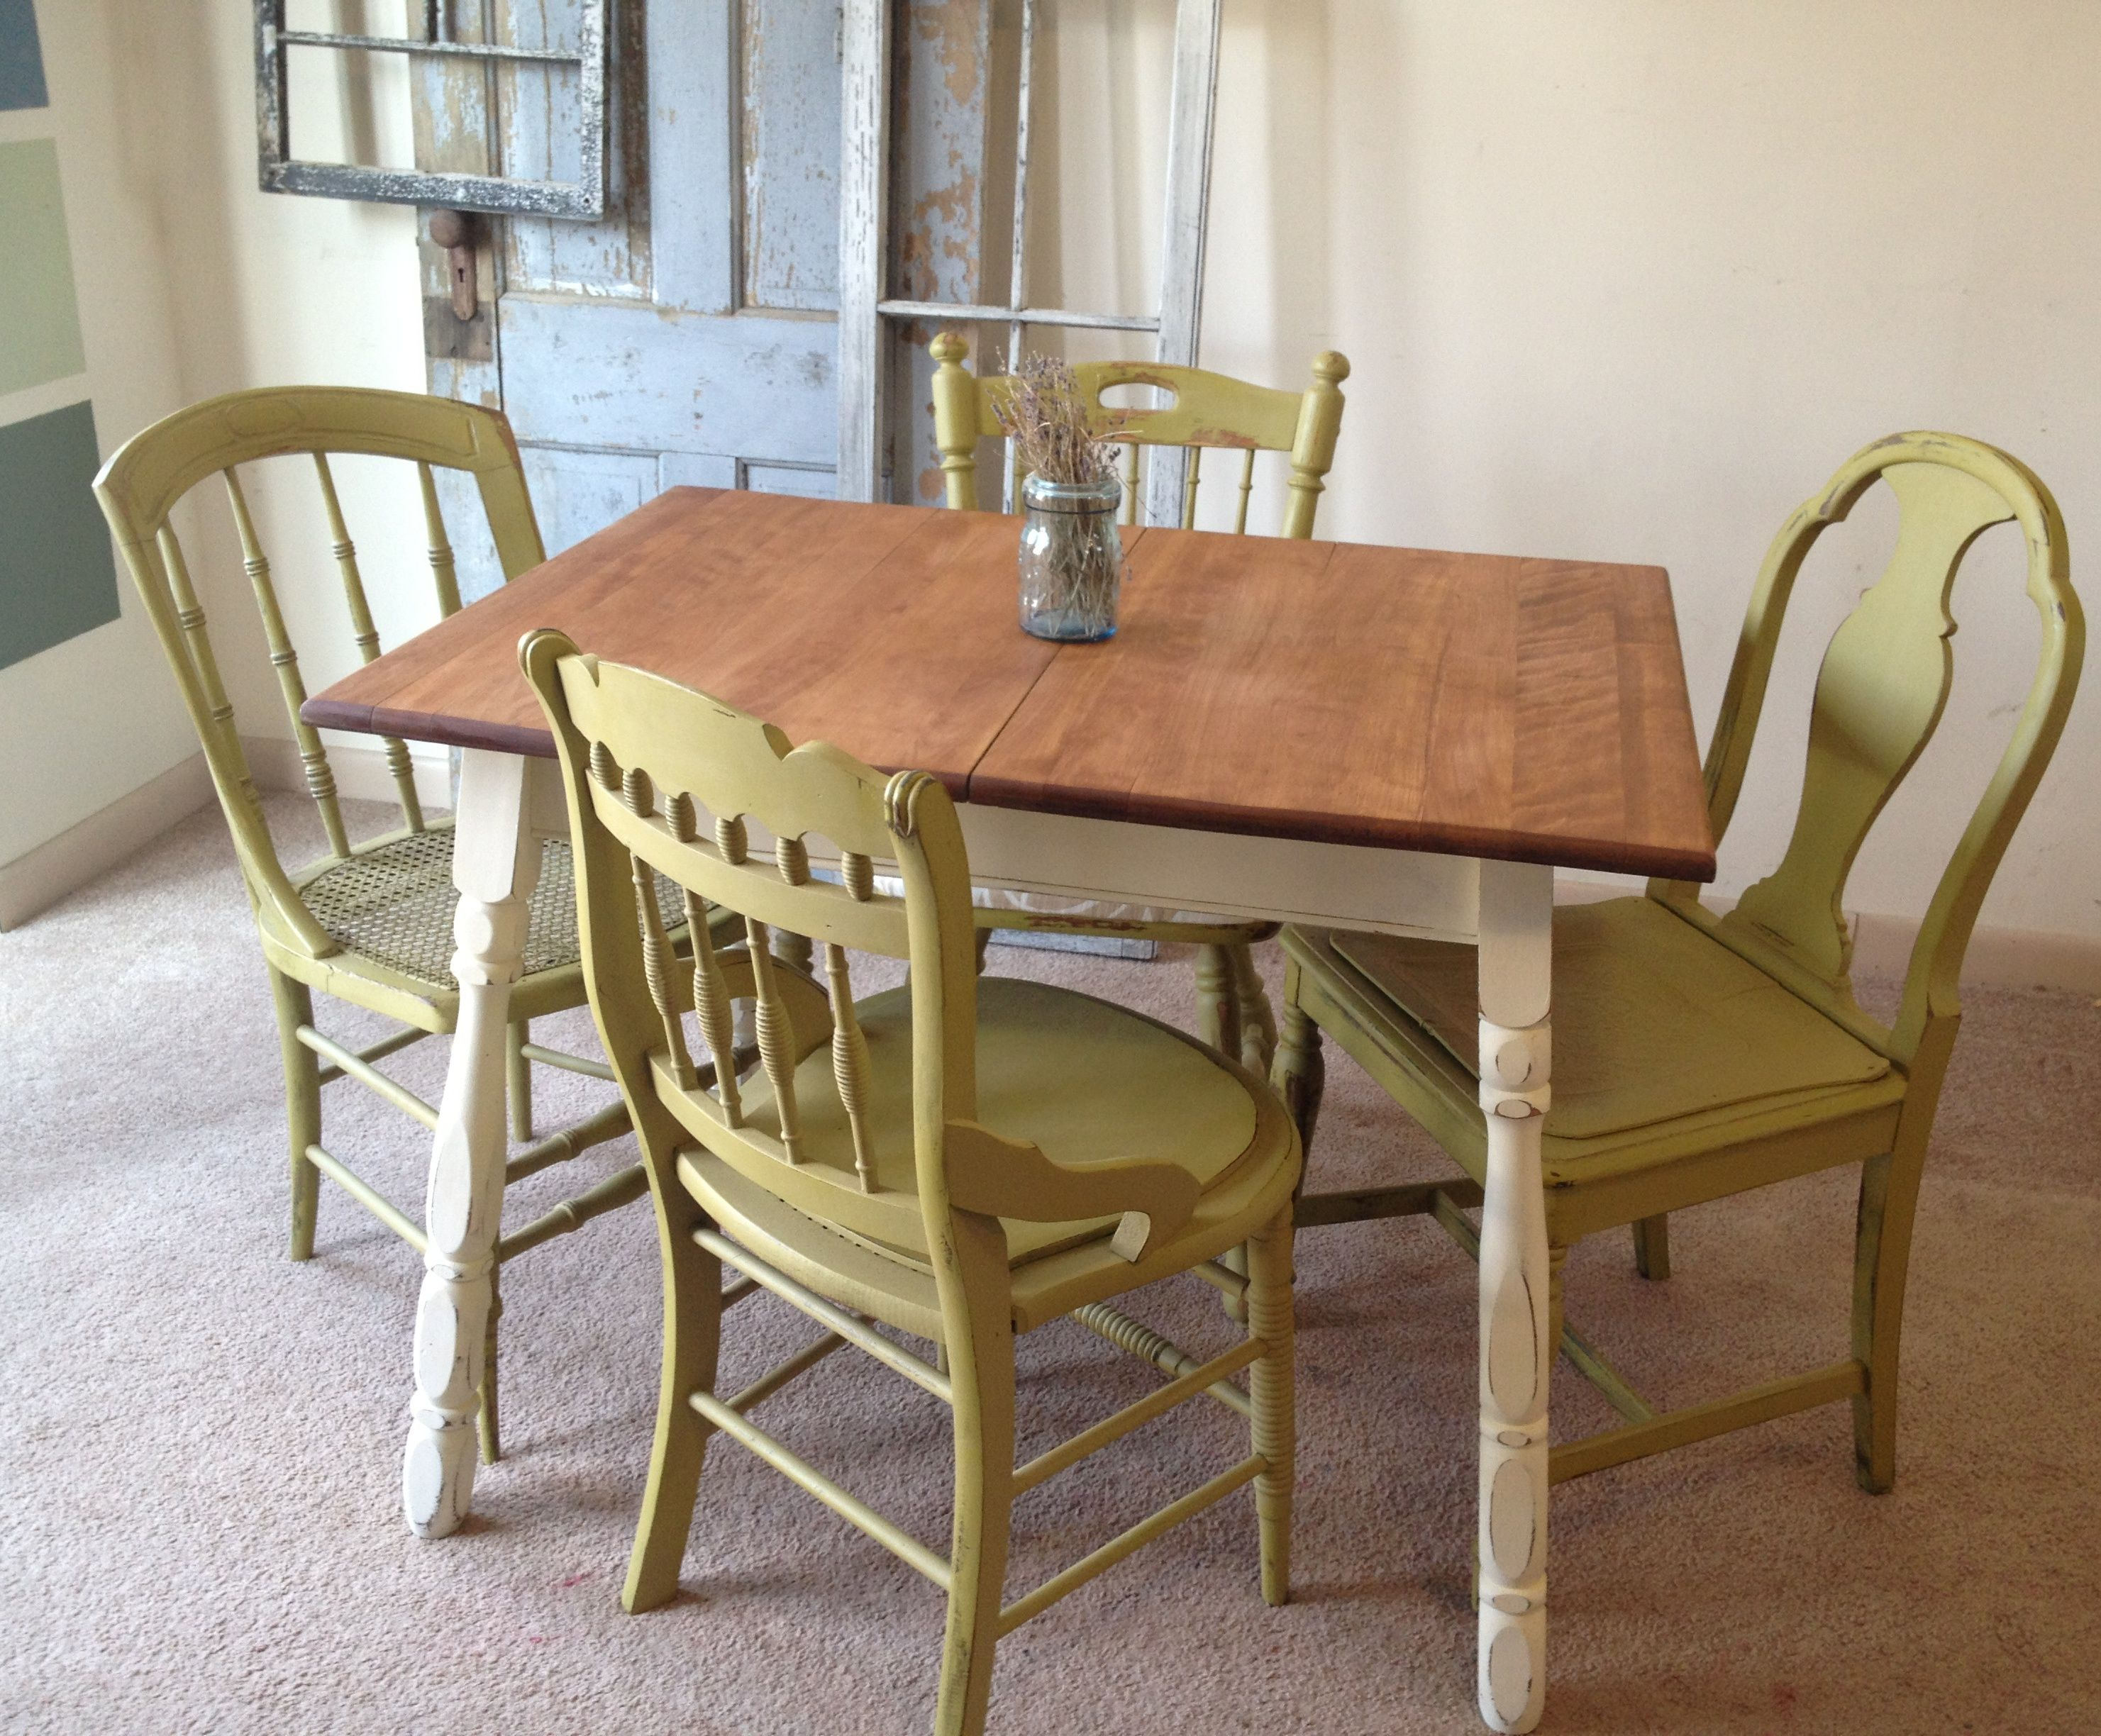 Amazing C1 1024846 Vintage Small Kitchen Table With Four Miss Matched Chairs And Tables